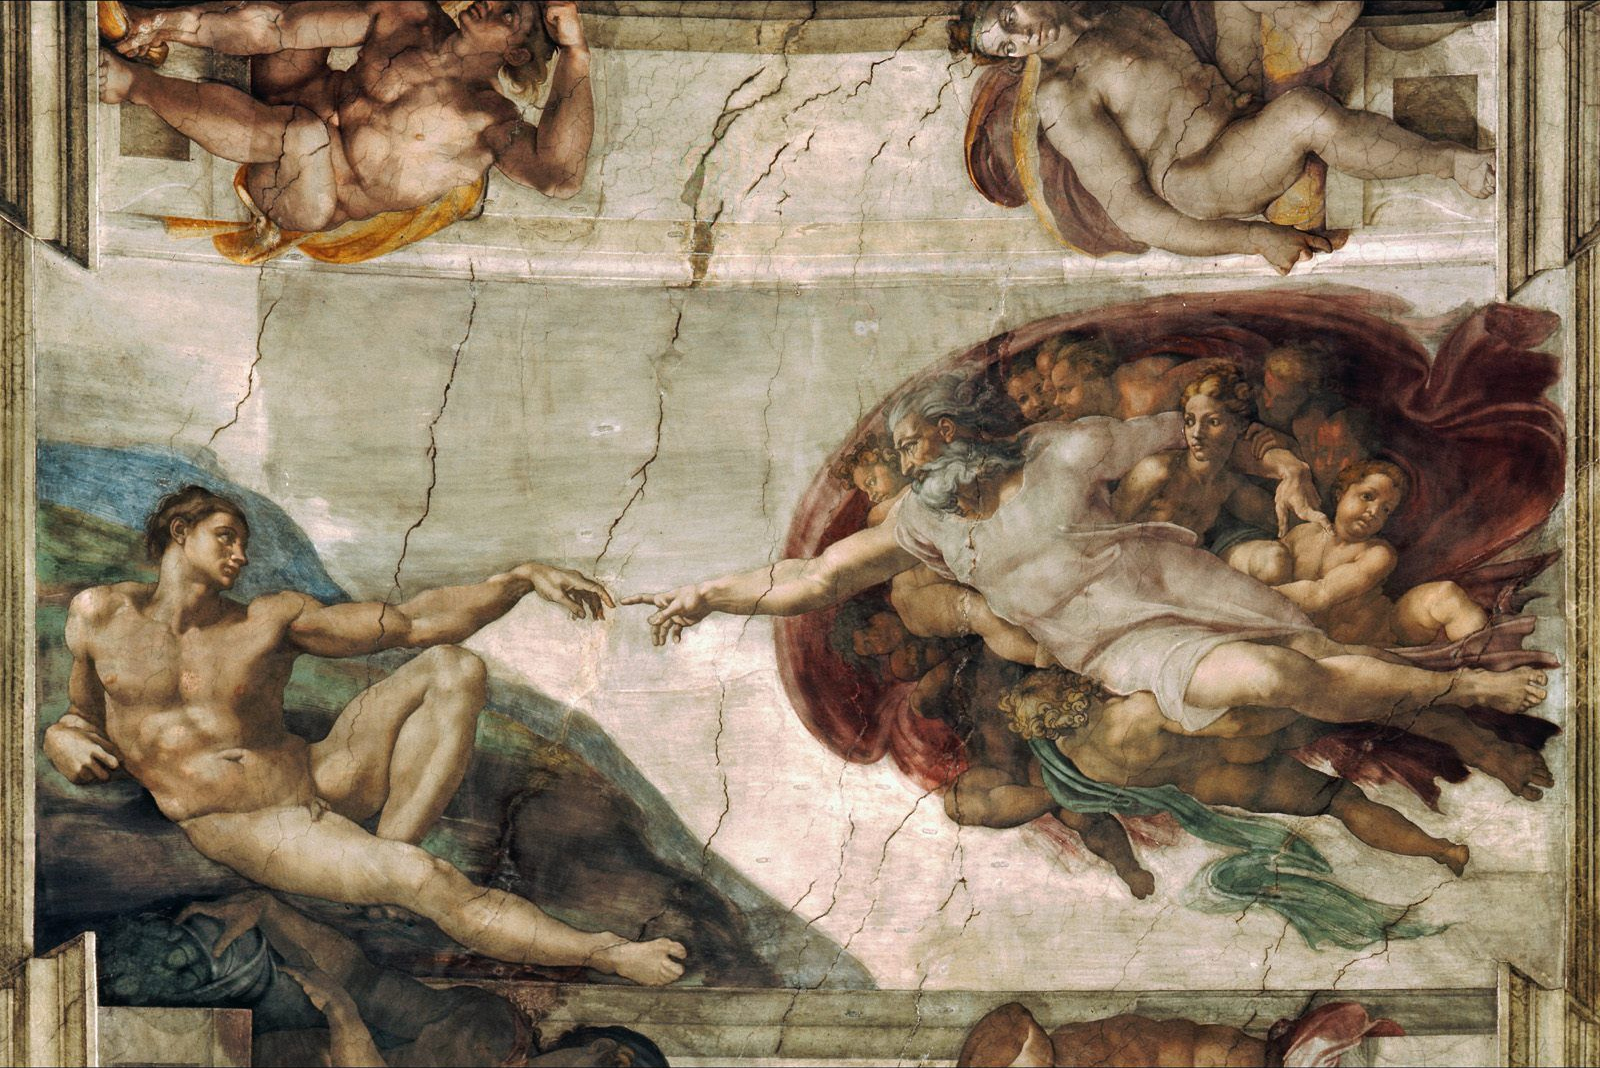 "Michelangelo's ""Creation of Adam,"" fresco from the ceiling of the Sistine Chapel, painted c. 1508-1512. Image source: https://upload.wikimedia.org/wikipedia/commons/0/0c/Creation_of_Adam_Michelangelo.jpg"